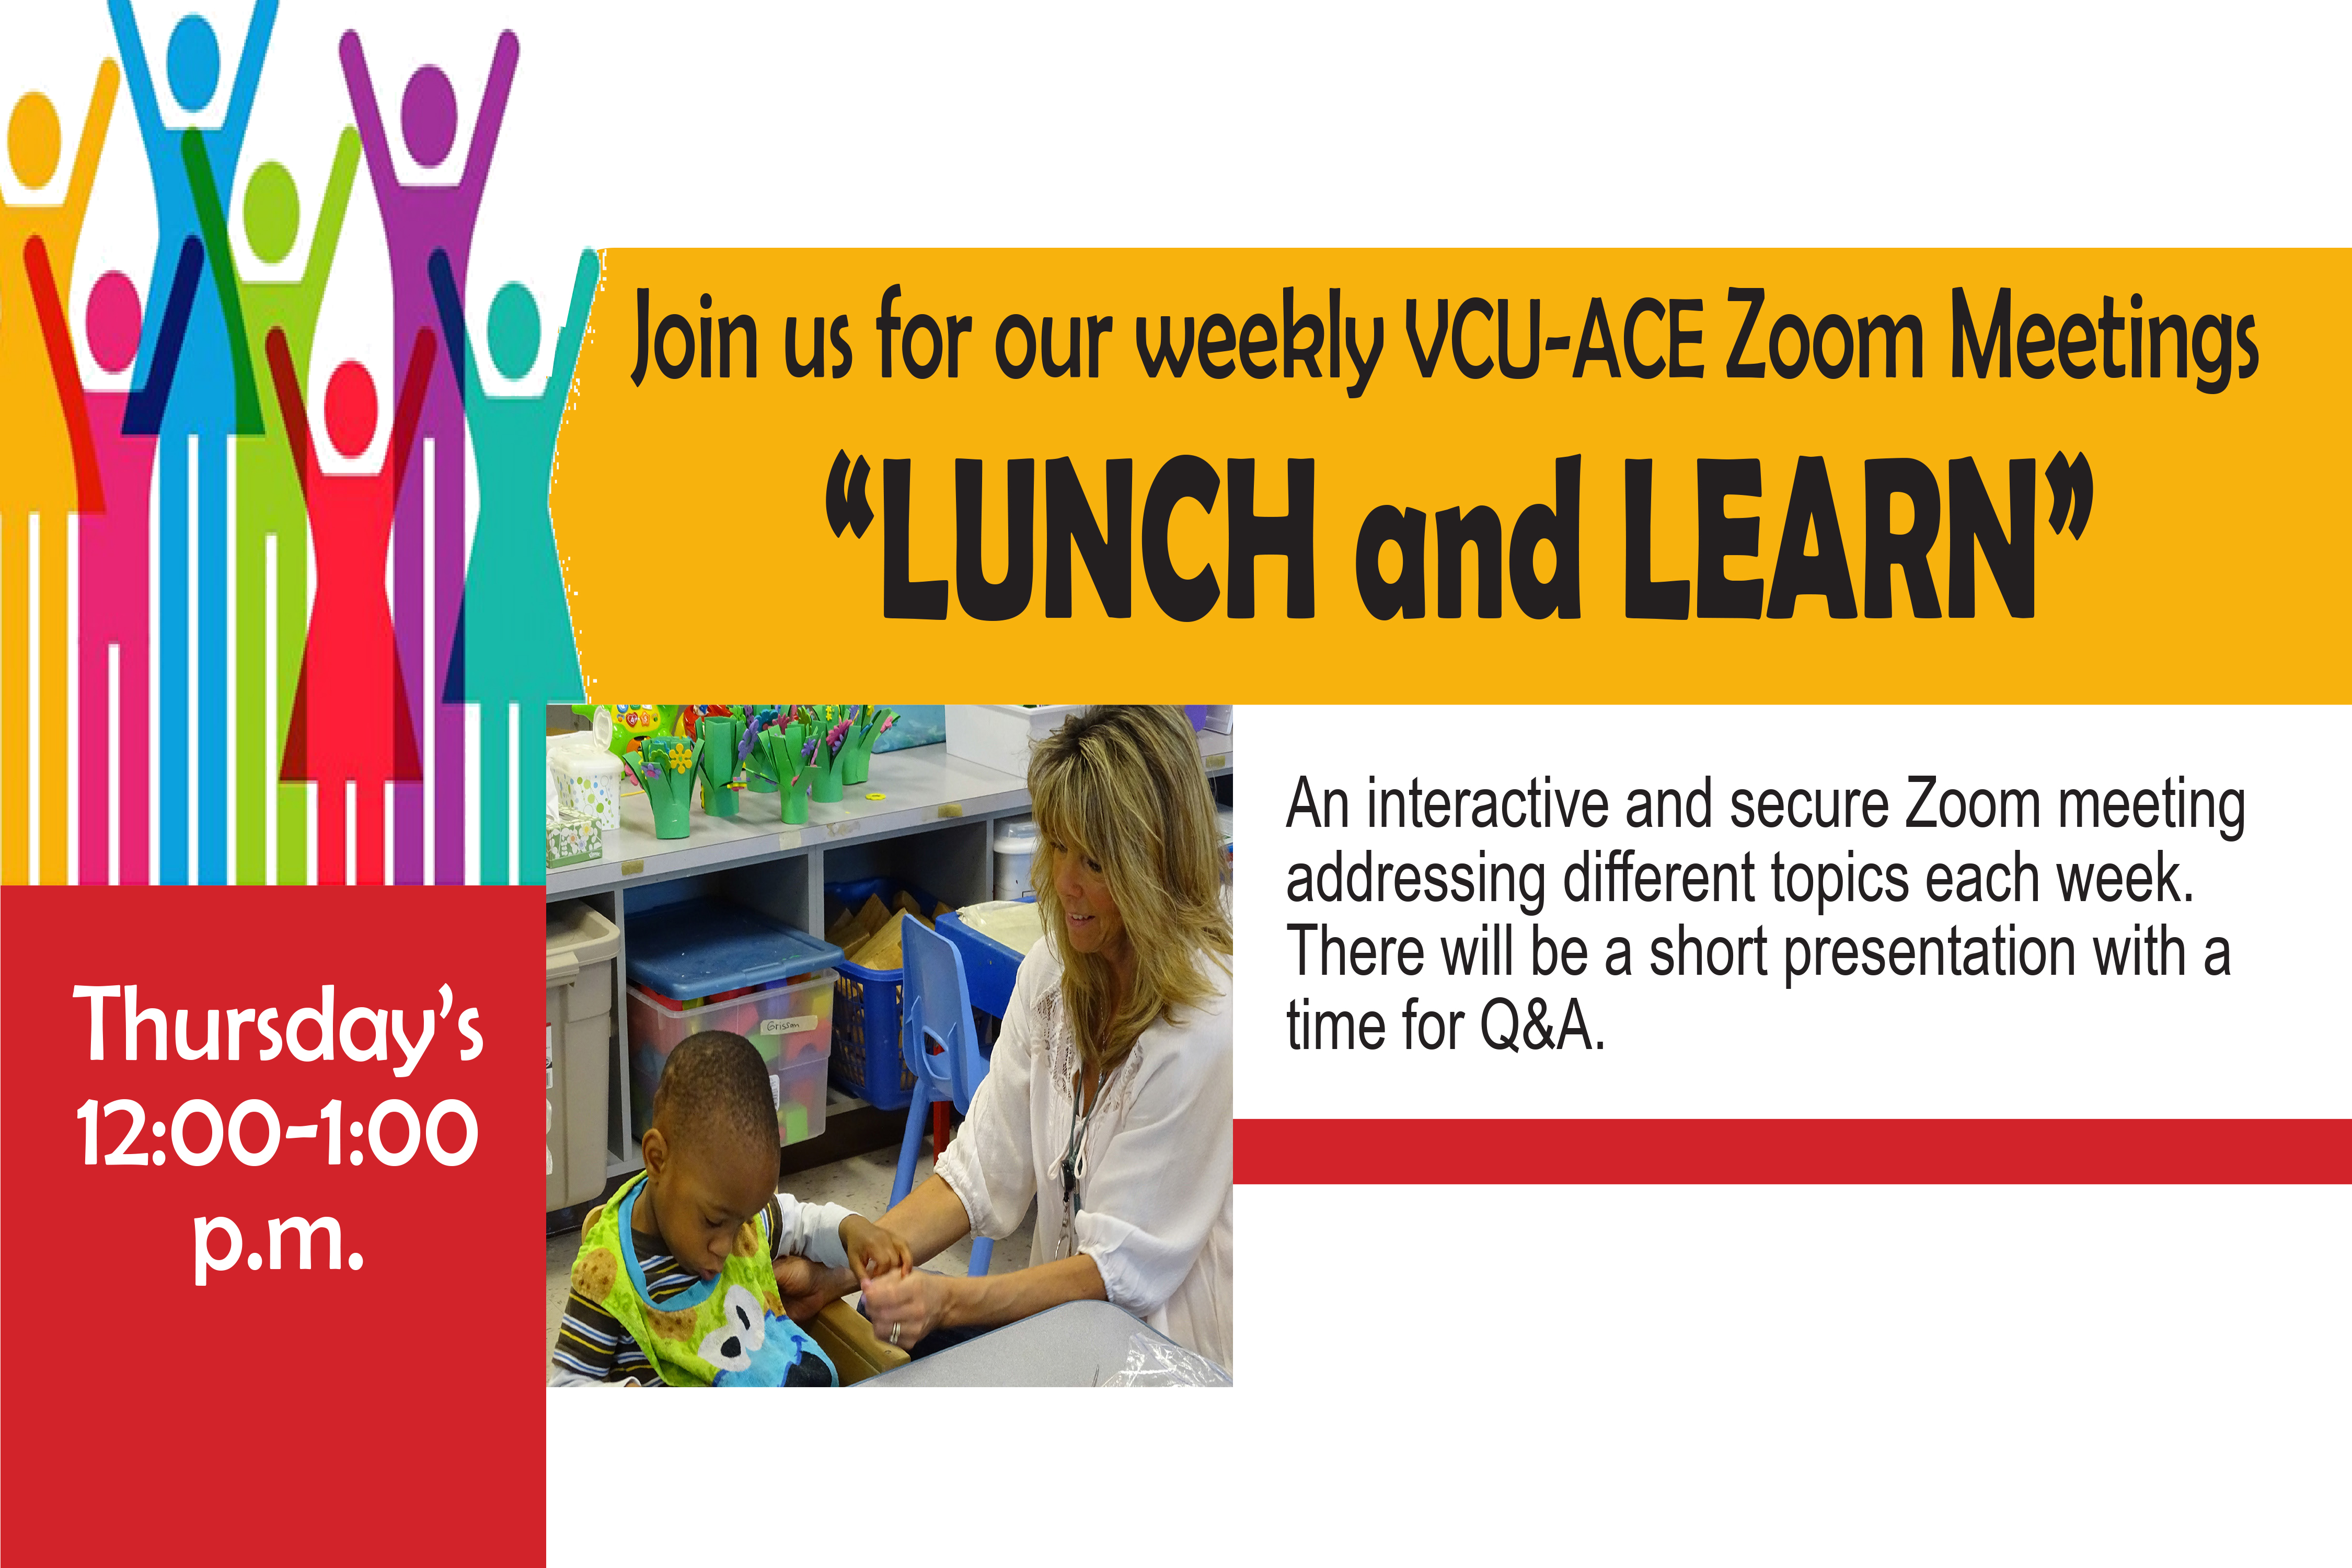 Join us for our weekly VCU-ACE Zoom Meetings. Lunch and Learn, Thursdays 12-1pm. An interactive and secure Zoom meeting addressing different topics each week. There will be a short presentation with a time for Q&A.